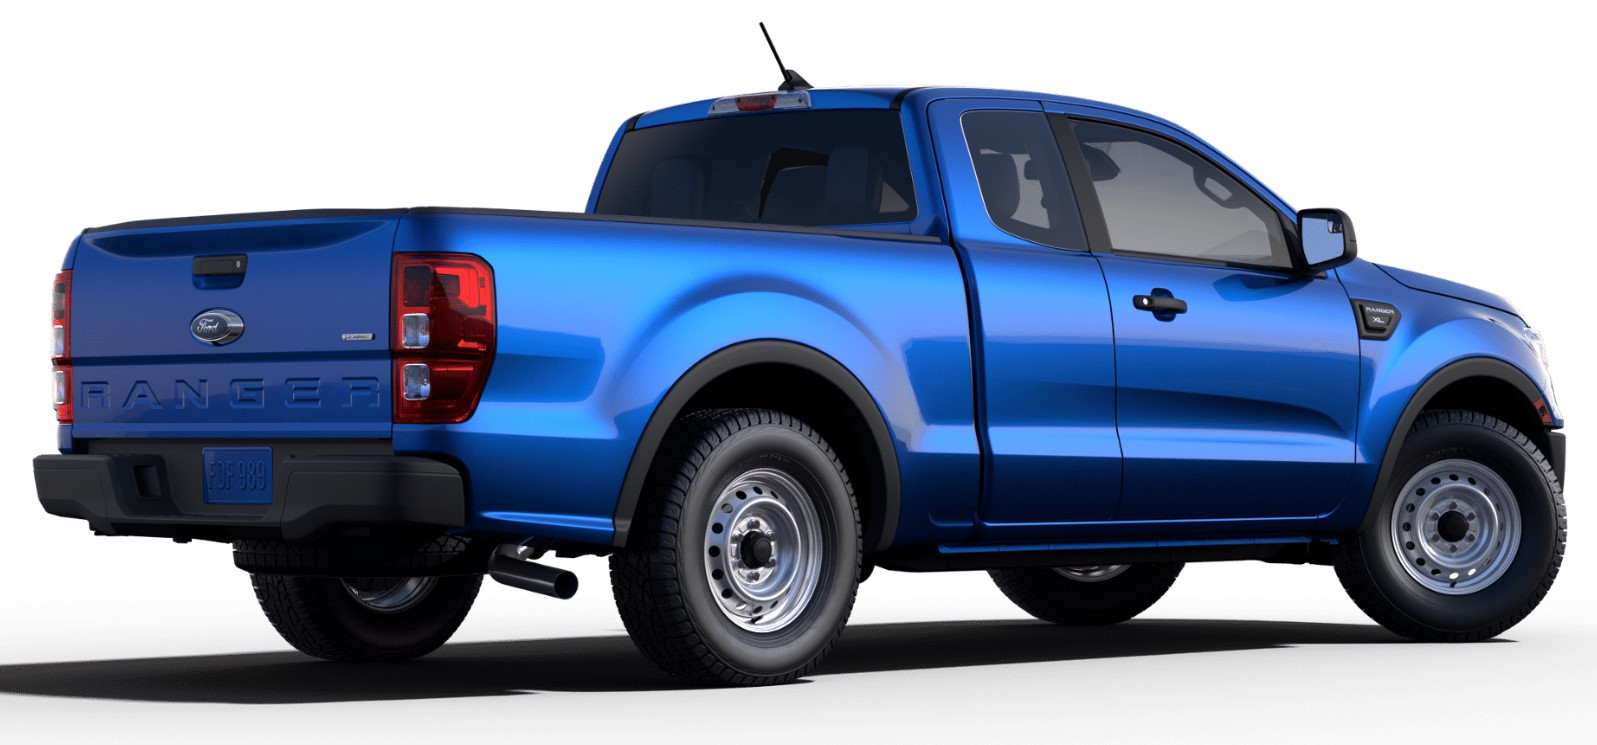 2019 Ford Ranger XL Rear Blue Exterior